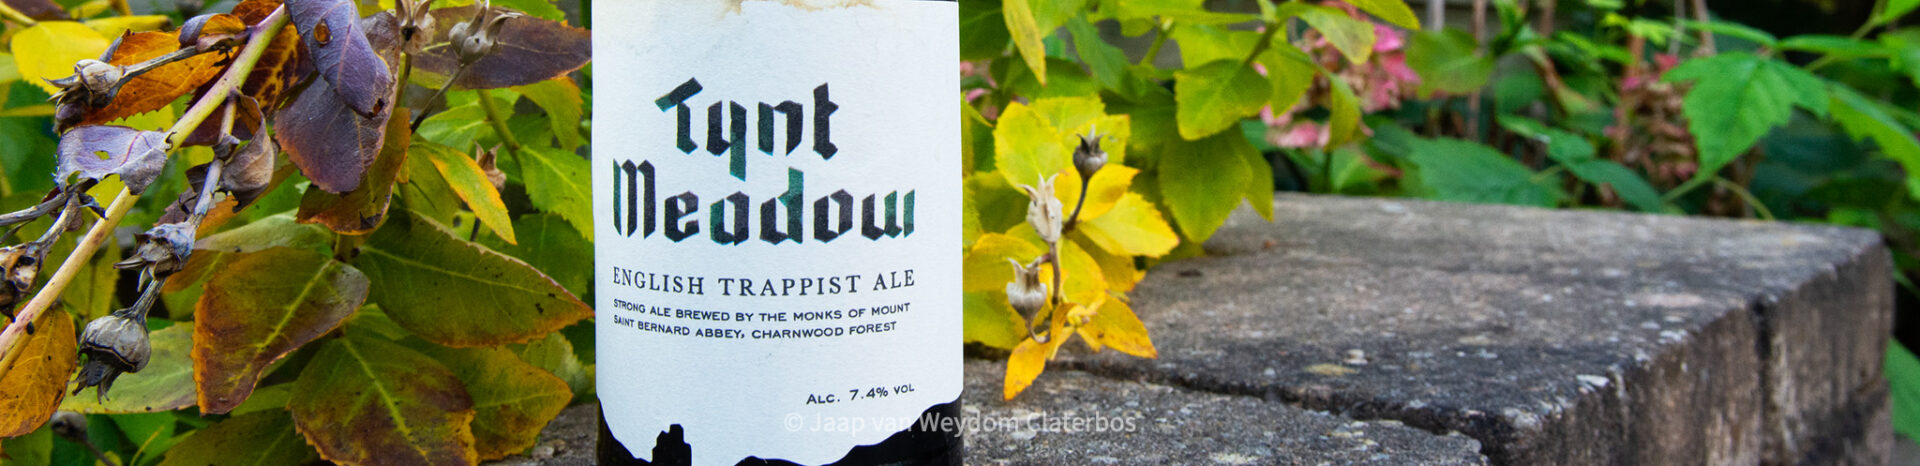 Tynt Meadow English Trappist Ale